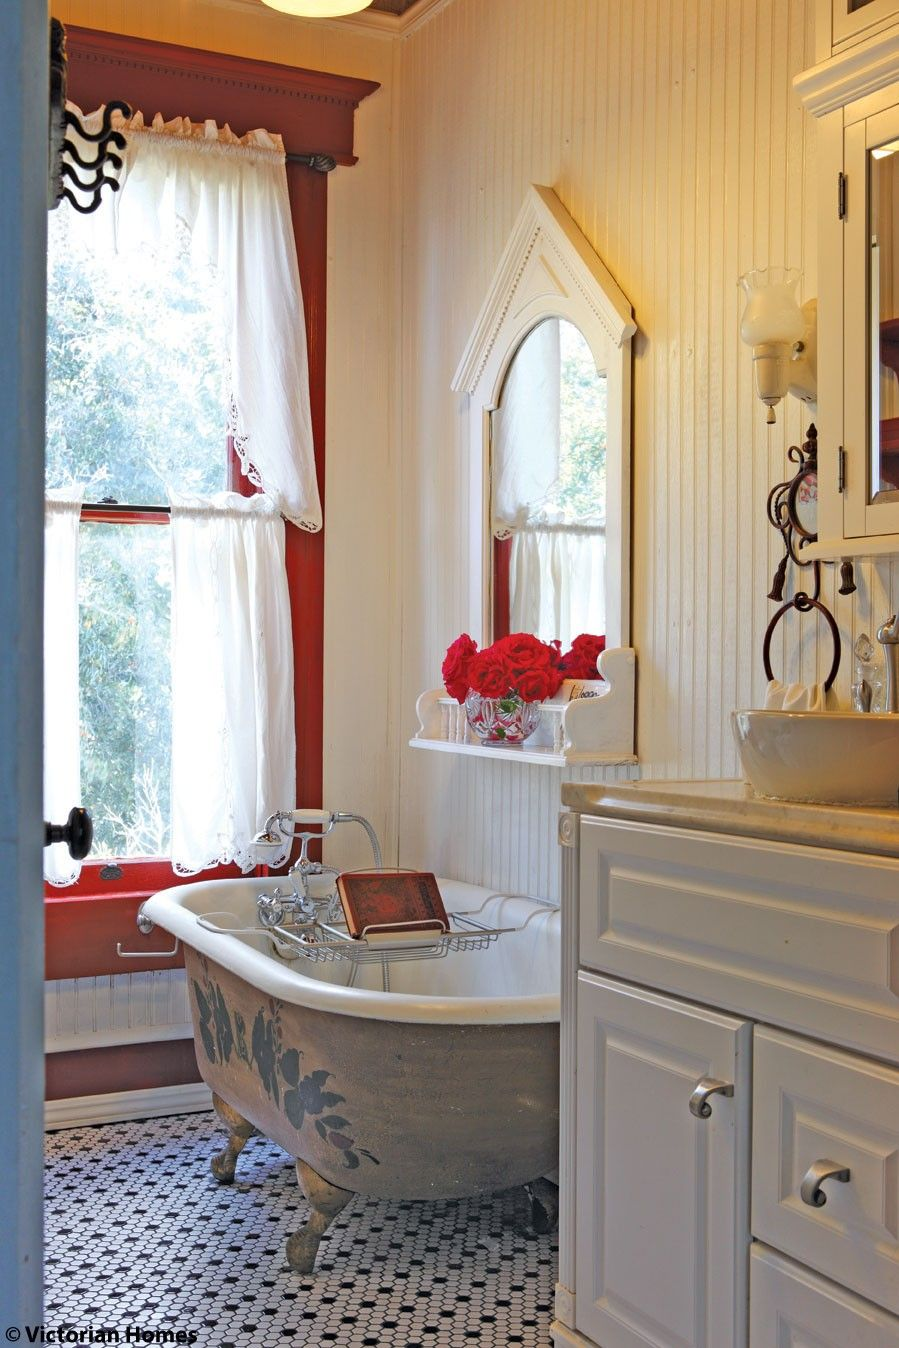 Cute How To Paint A Bathtub Small Paint For Bathtub Clean Bath Tub Paint Bathtub Repair Contractor Young Painting A Tub Gray How To Paint Your Bathtub